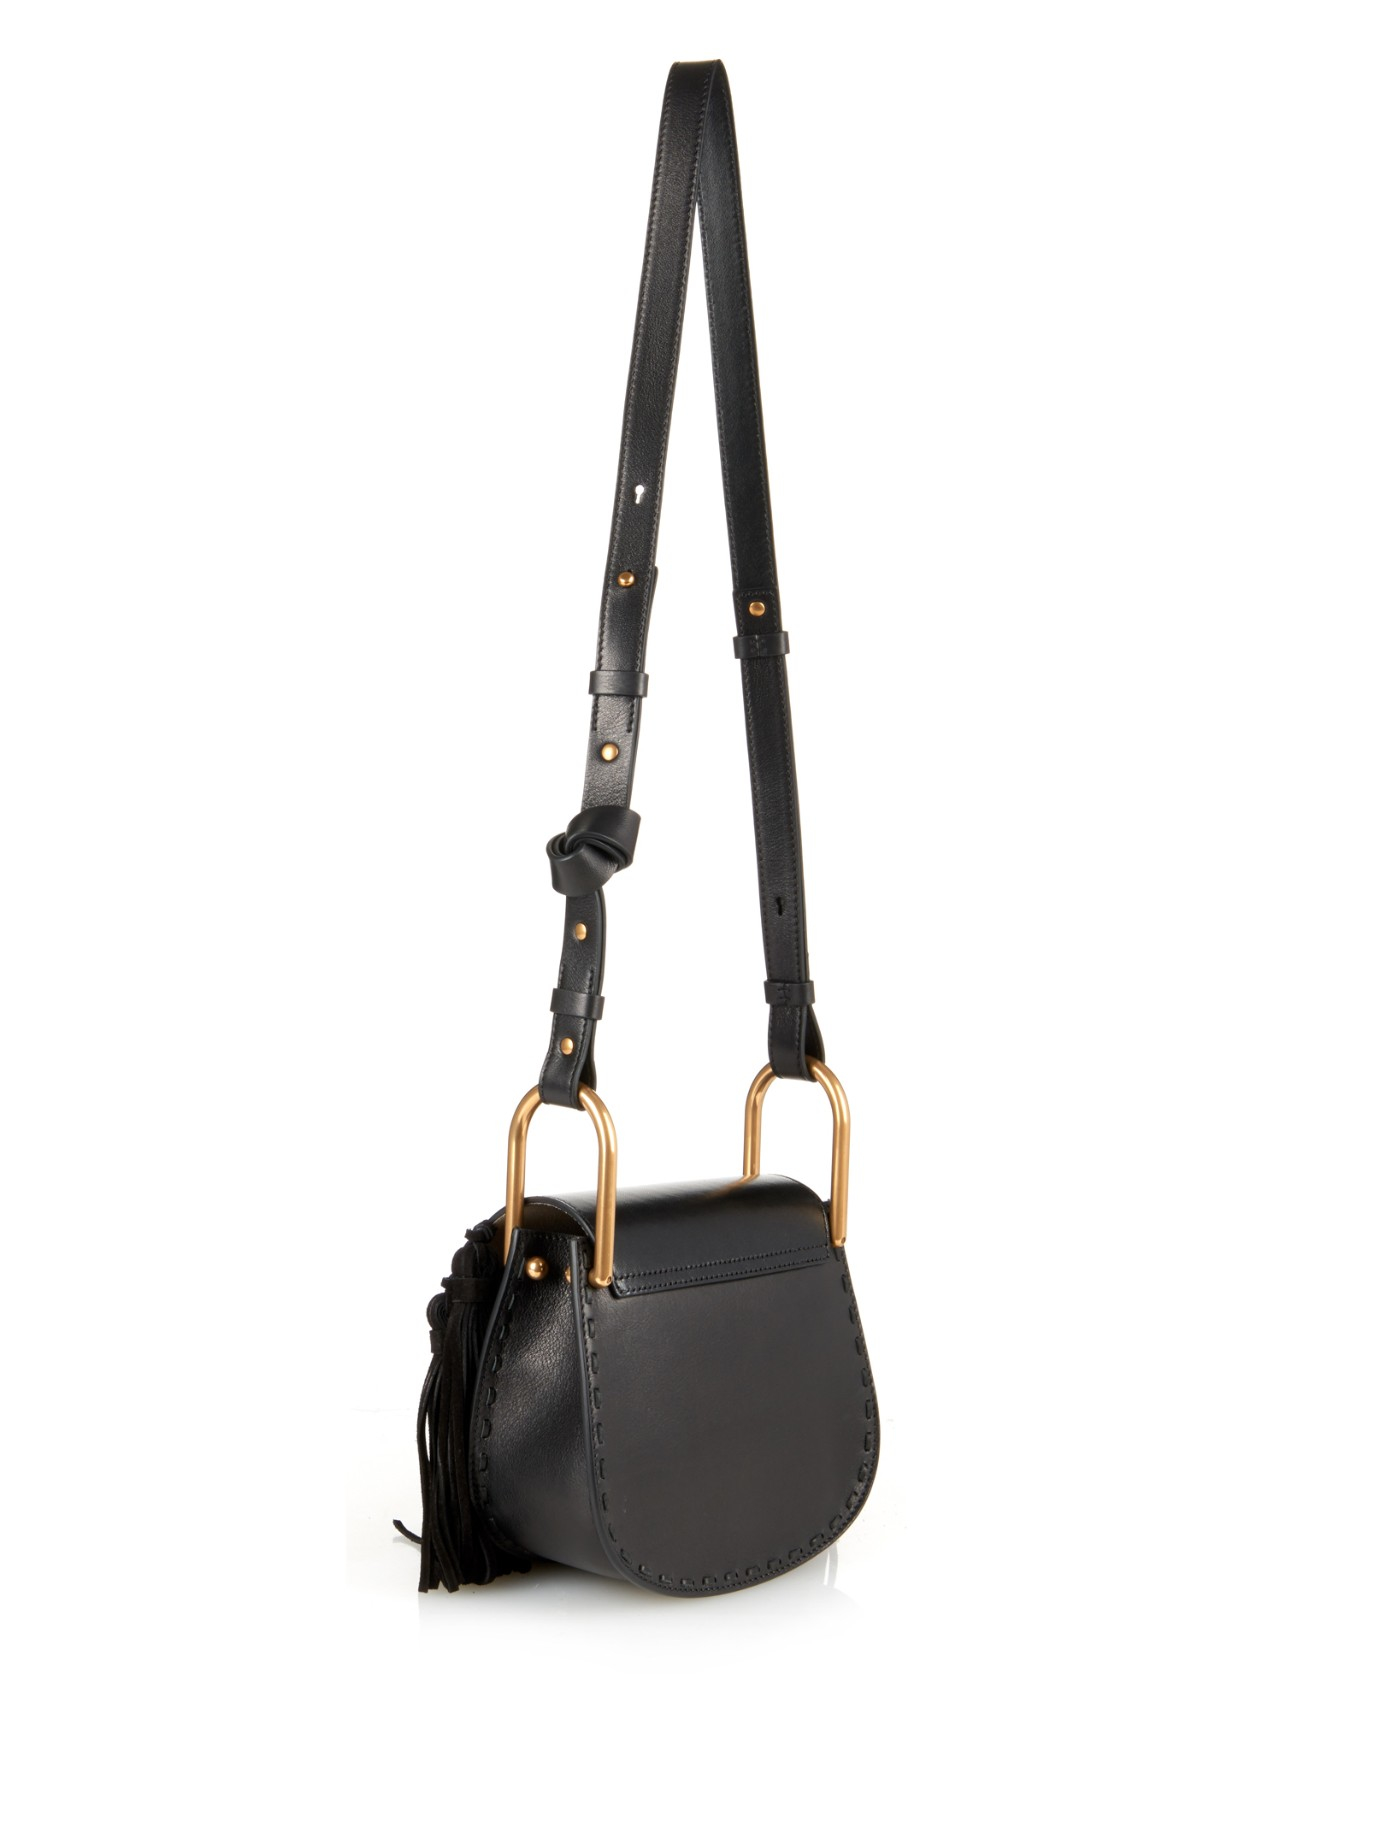 chloe replica - Chlo�� Hudson Mini Cross-Body Bag in Black | Lyst